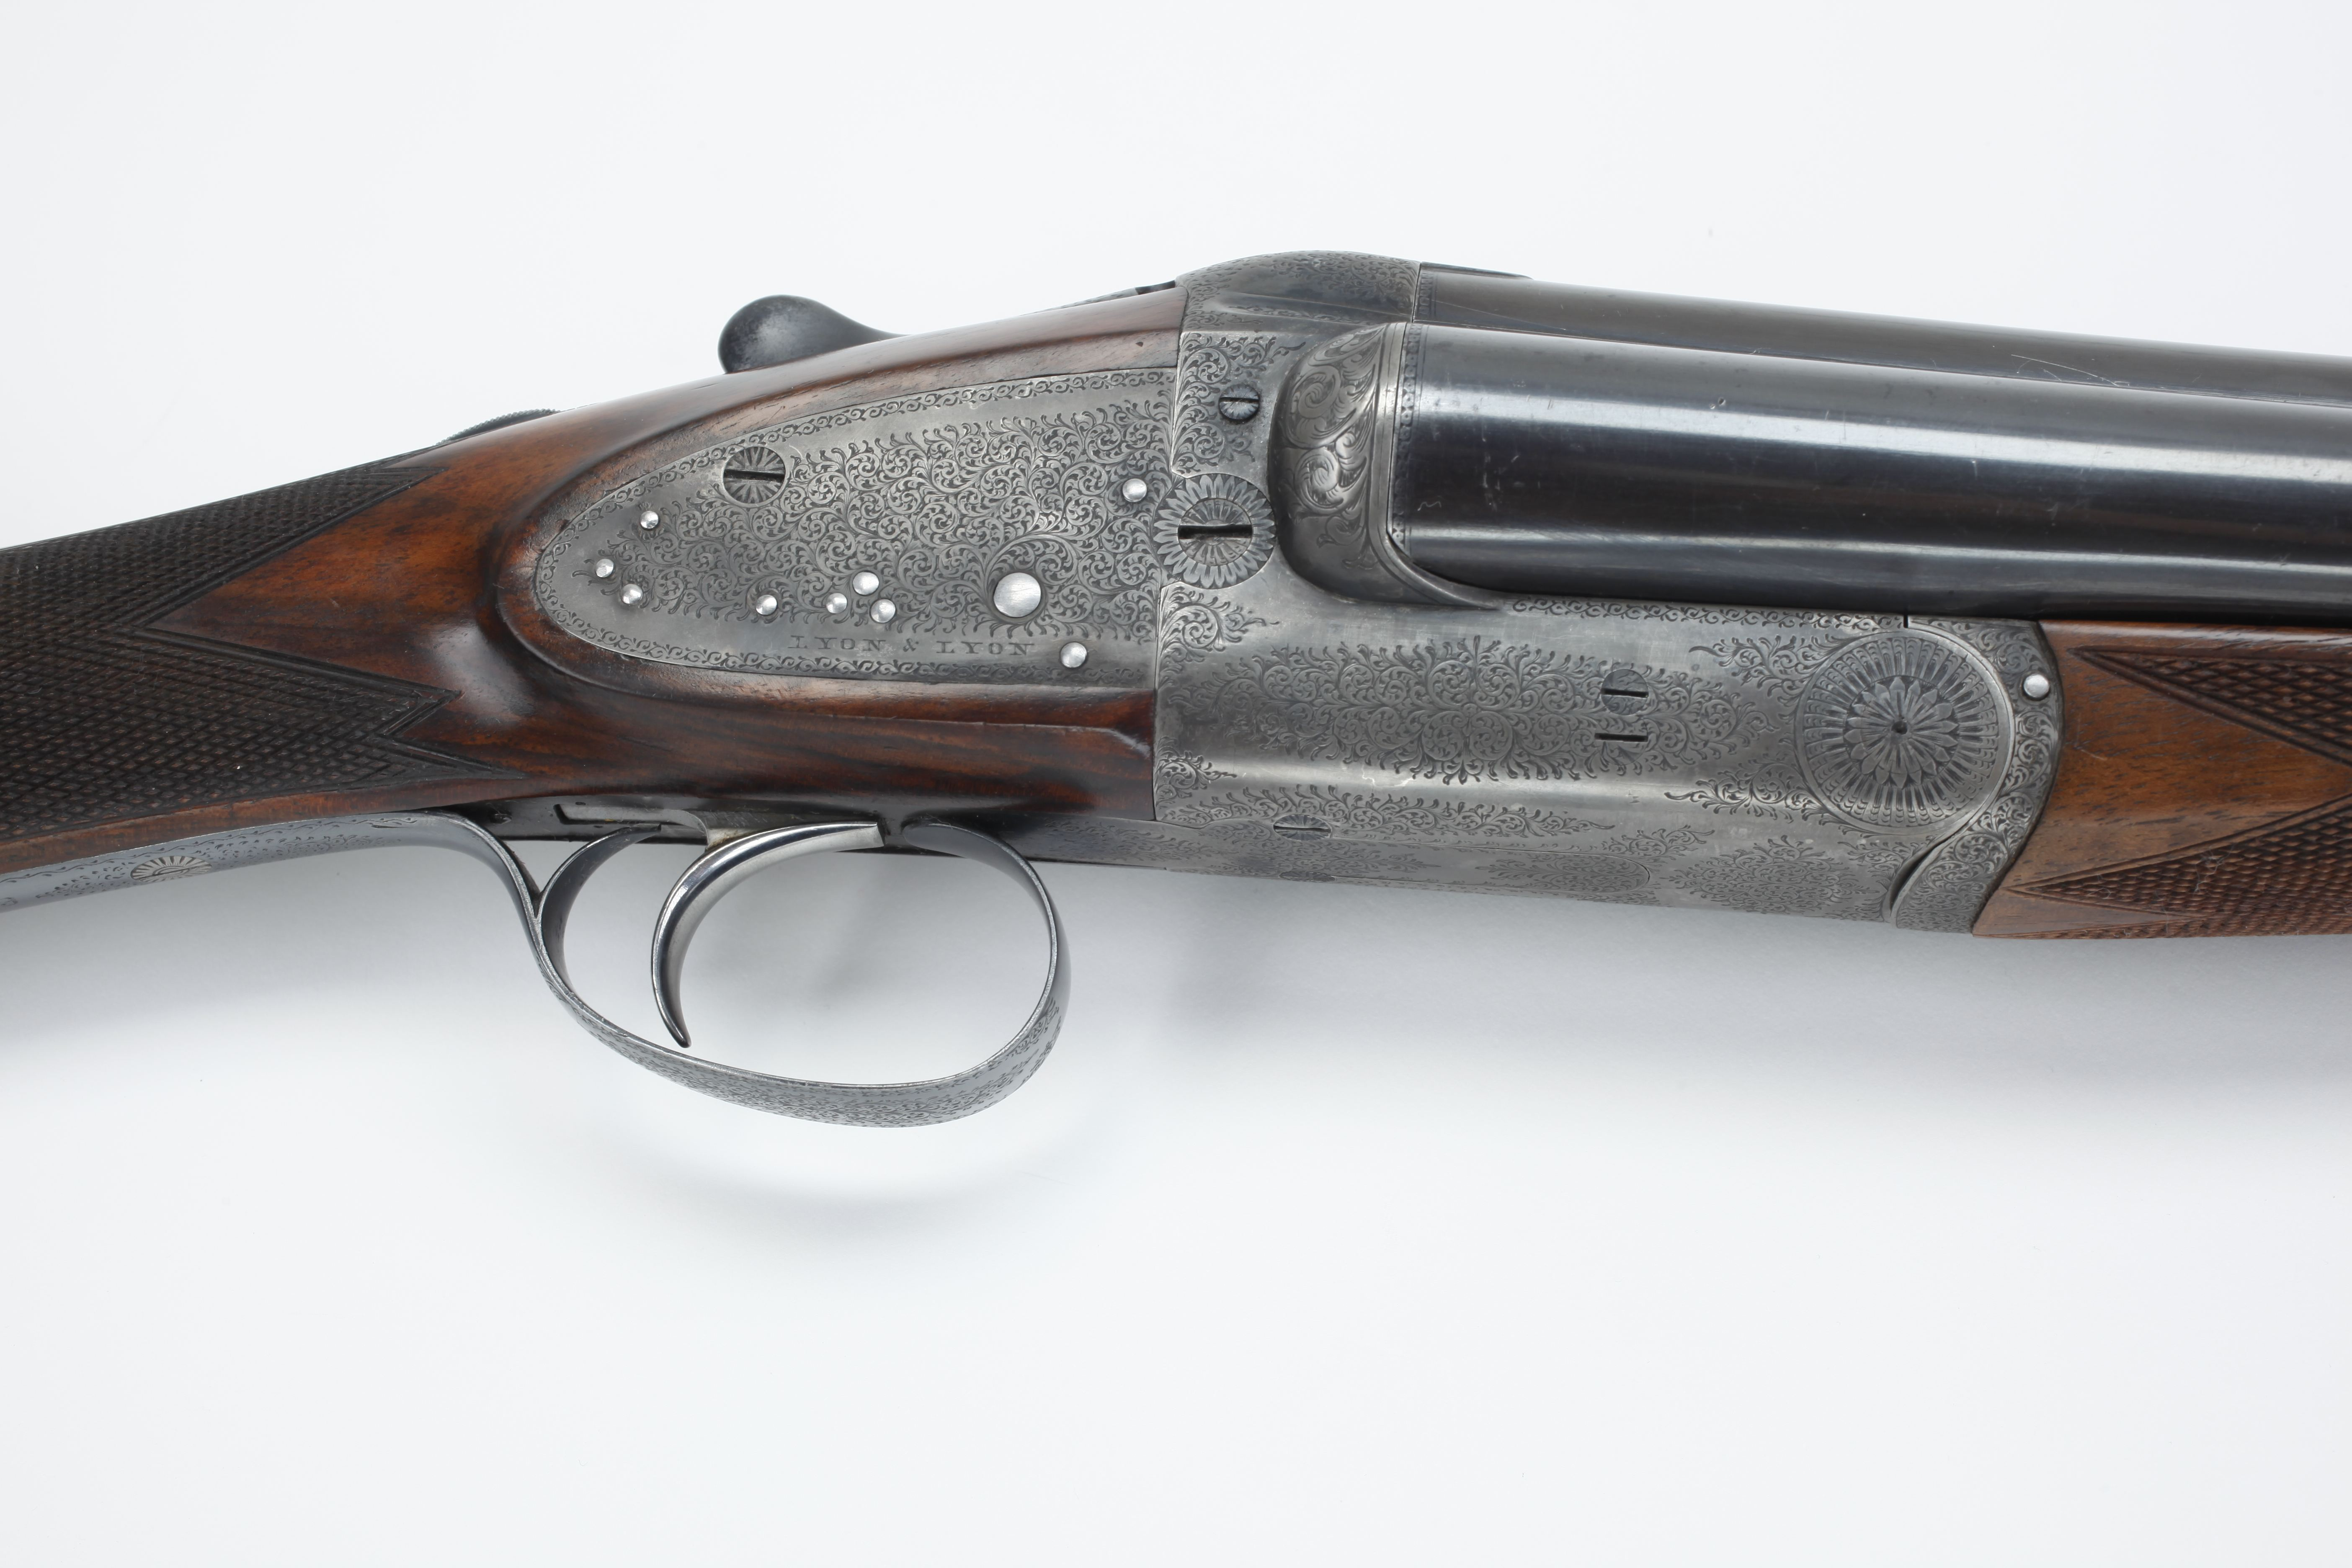 Edwinson, Green & Sons Triling Three Barrel Shotgun - 12 ga.